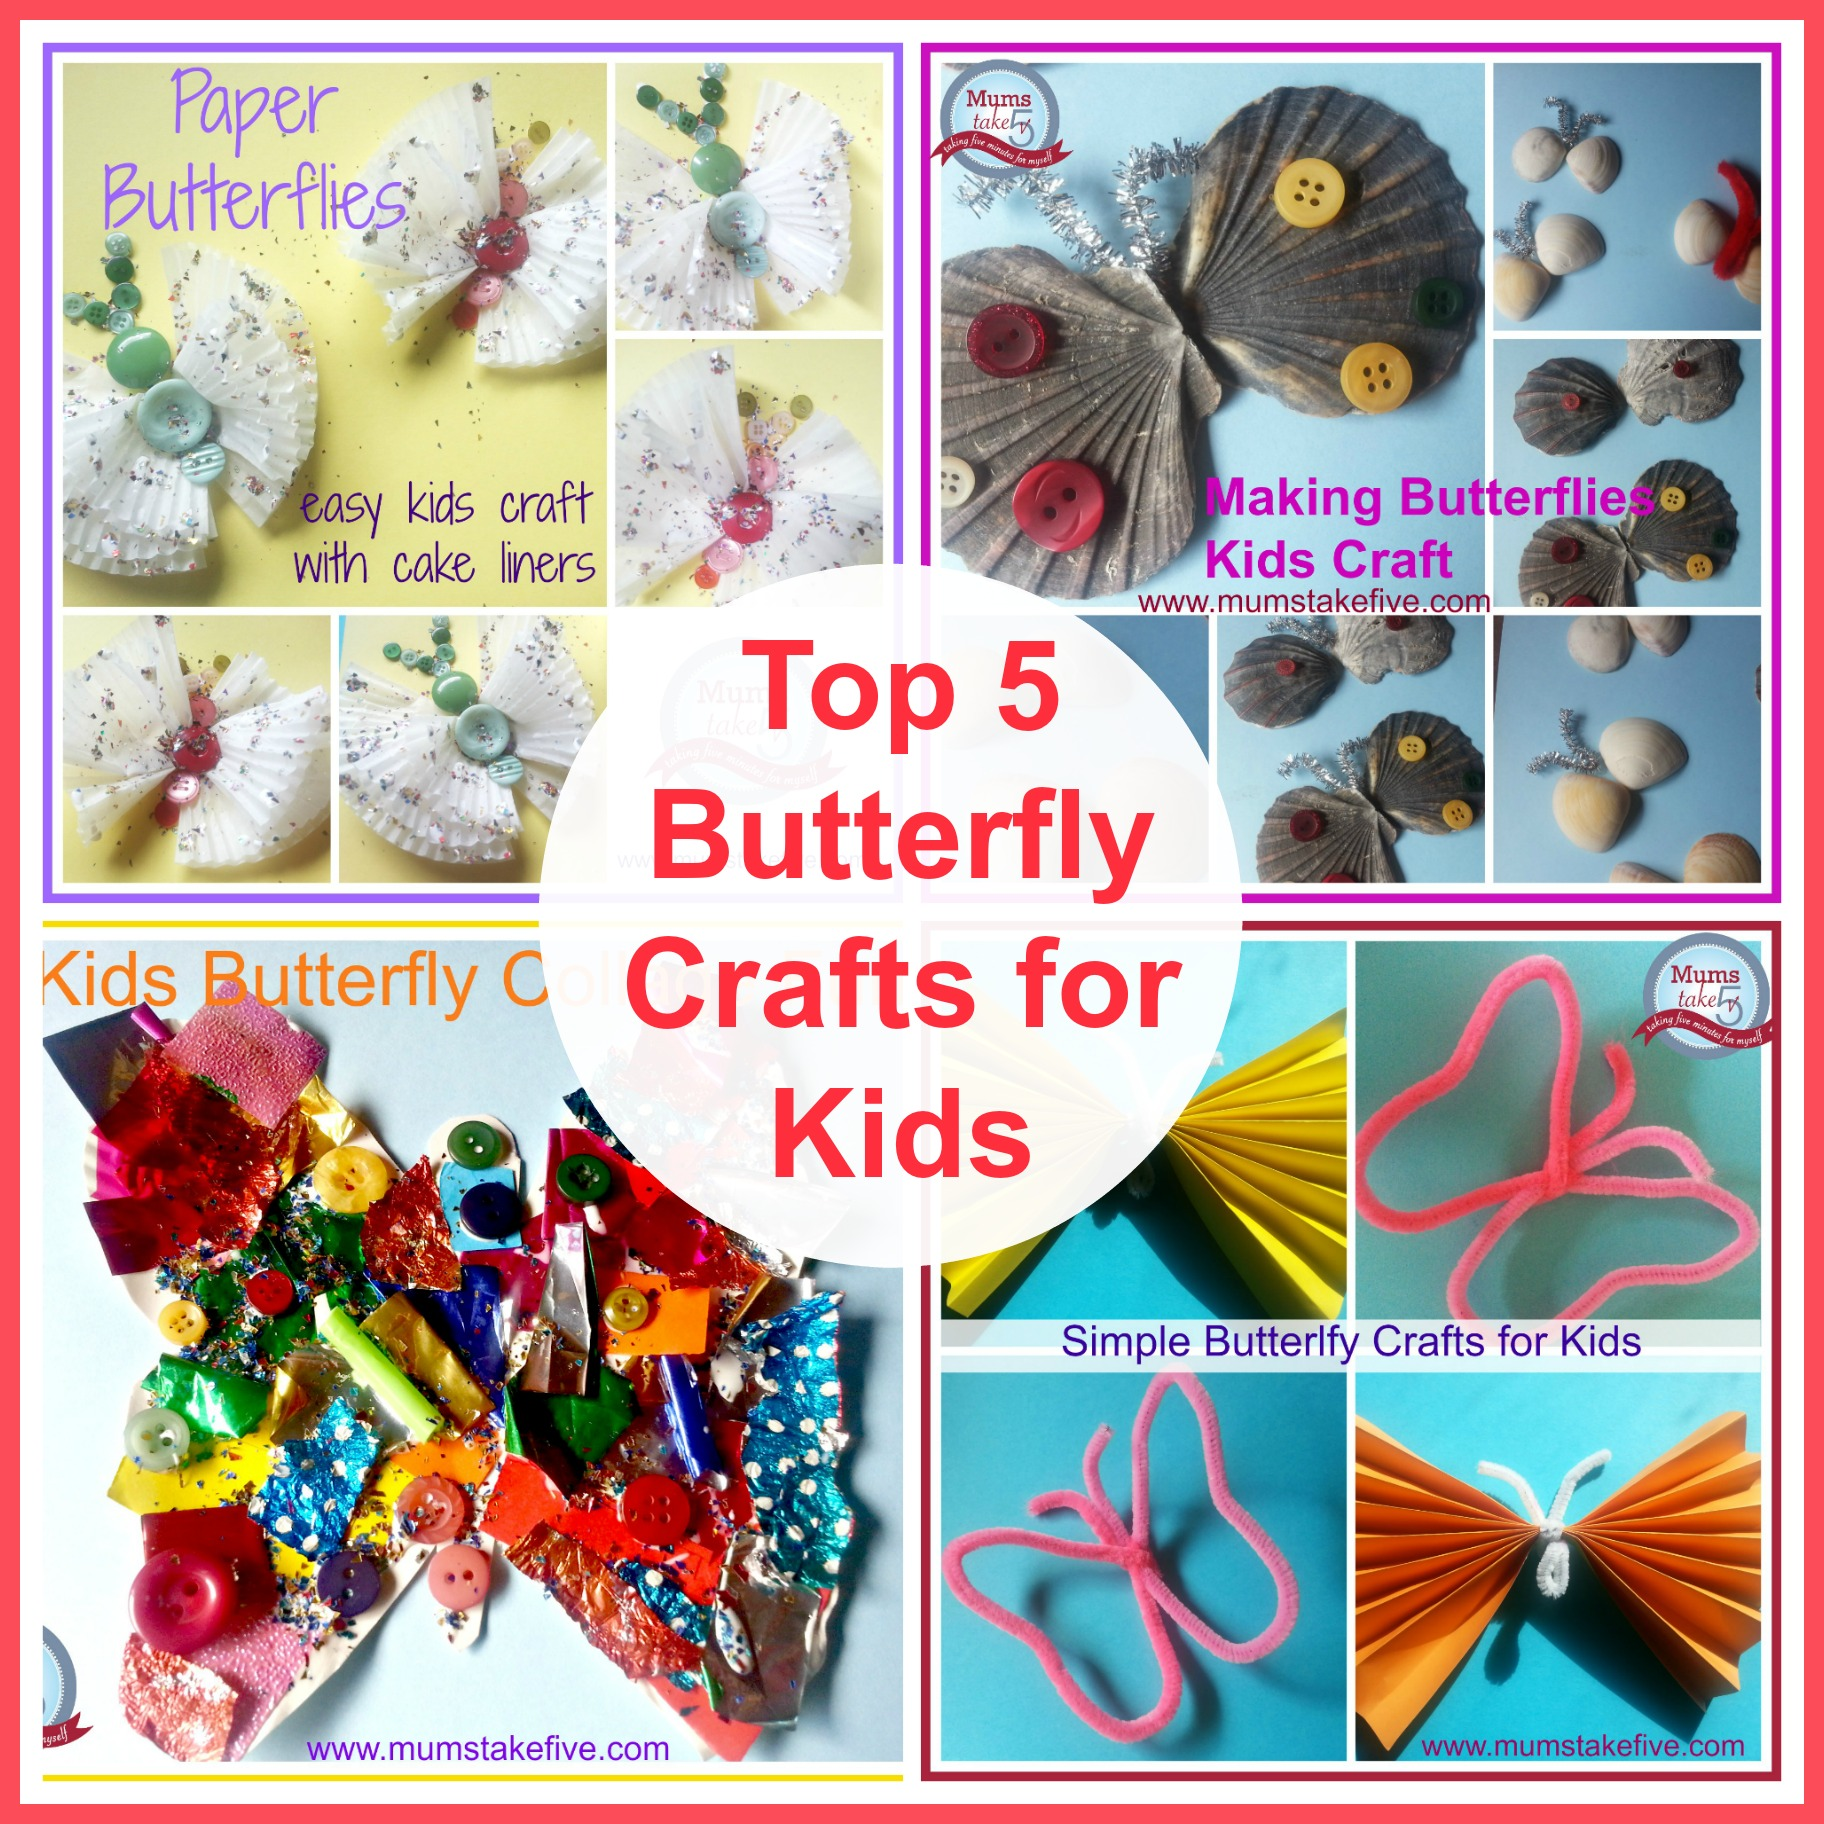 http://www.mumstakefive.com/index.php/craft-learn-play/crafts/266-top-five-butterfly-crafts-for-kids